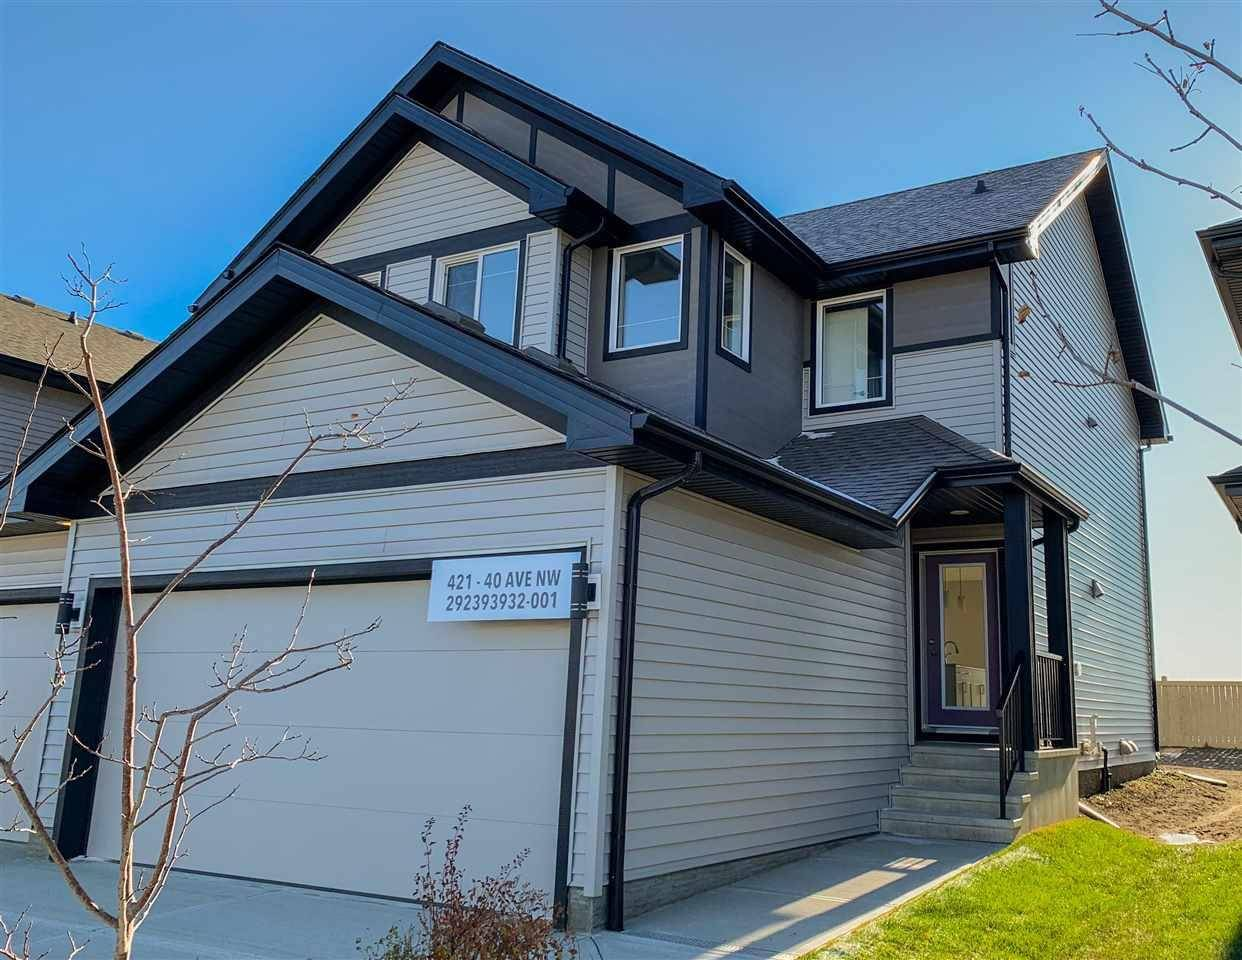 Townhouse for sale at 421 40 Ave Nw Edmonton Alberta - MLS: E4178568